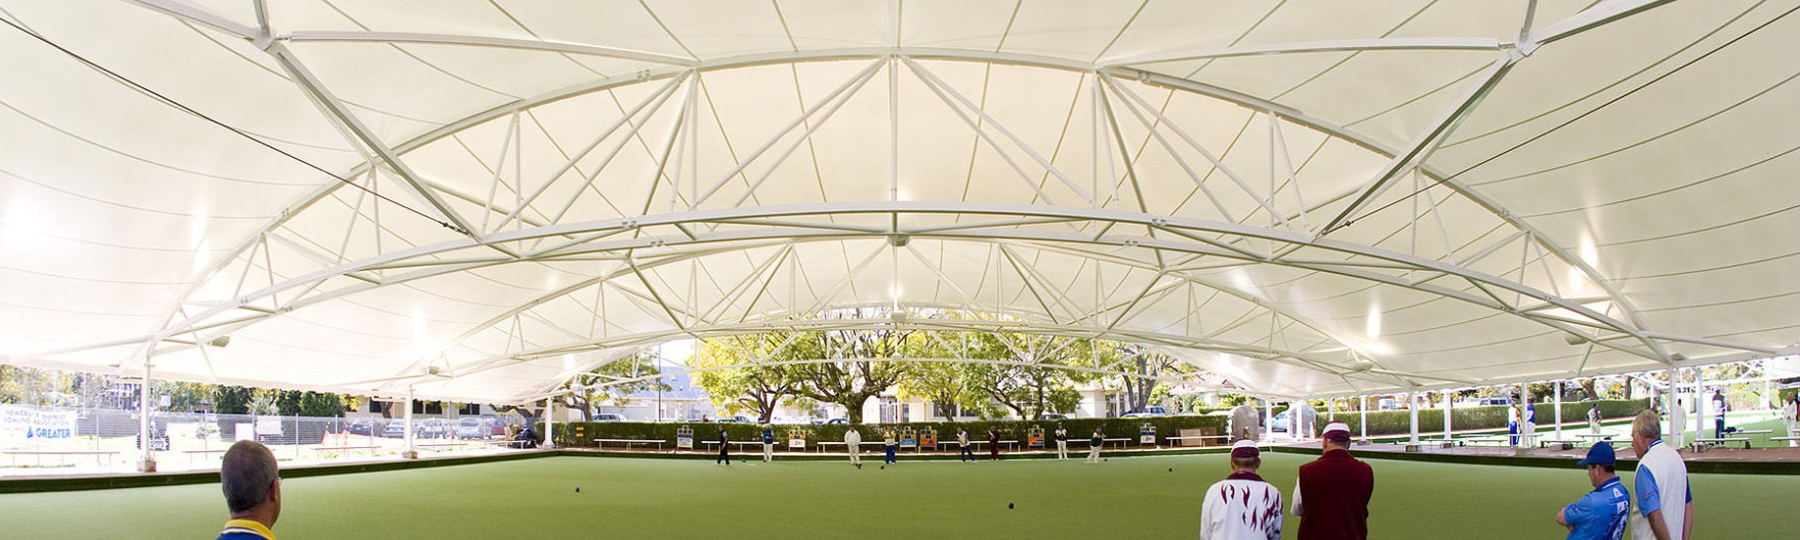 Shade to Order Australia | Raymond Terrace Bowling Club Shade Structures for bowling greens